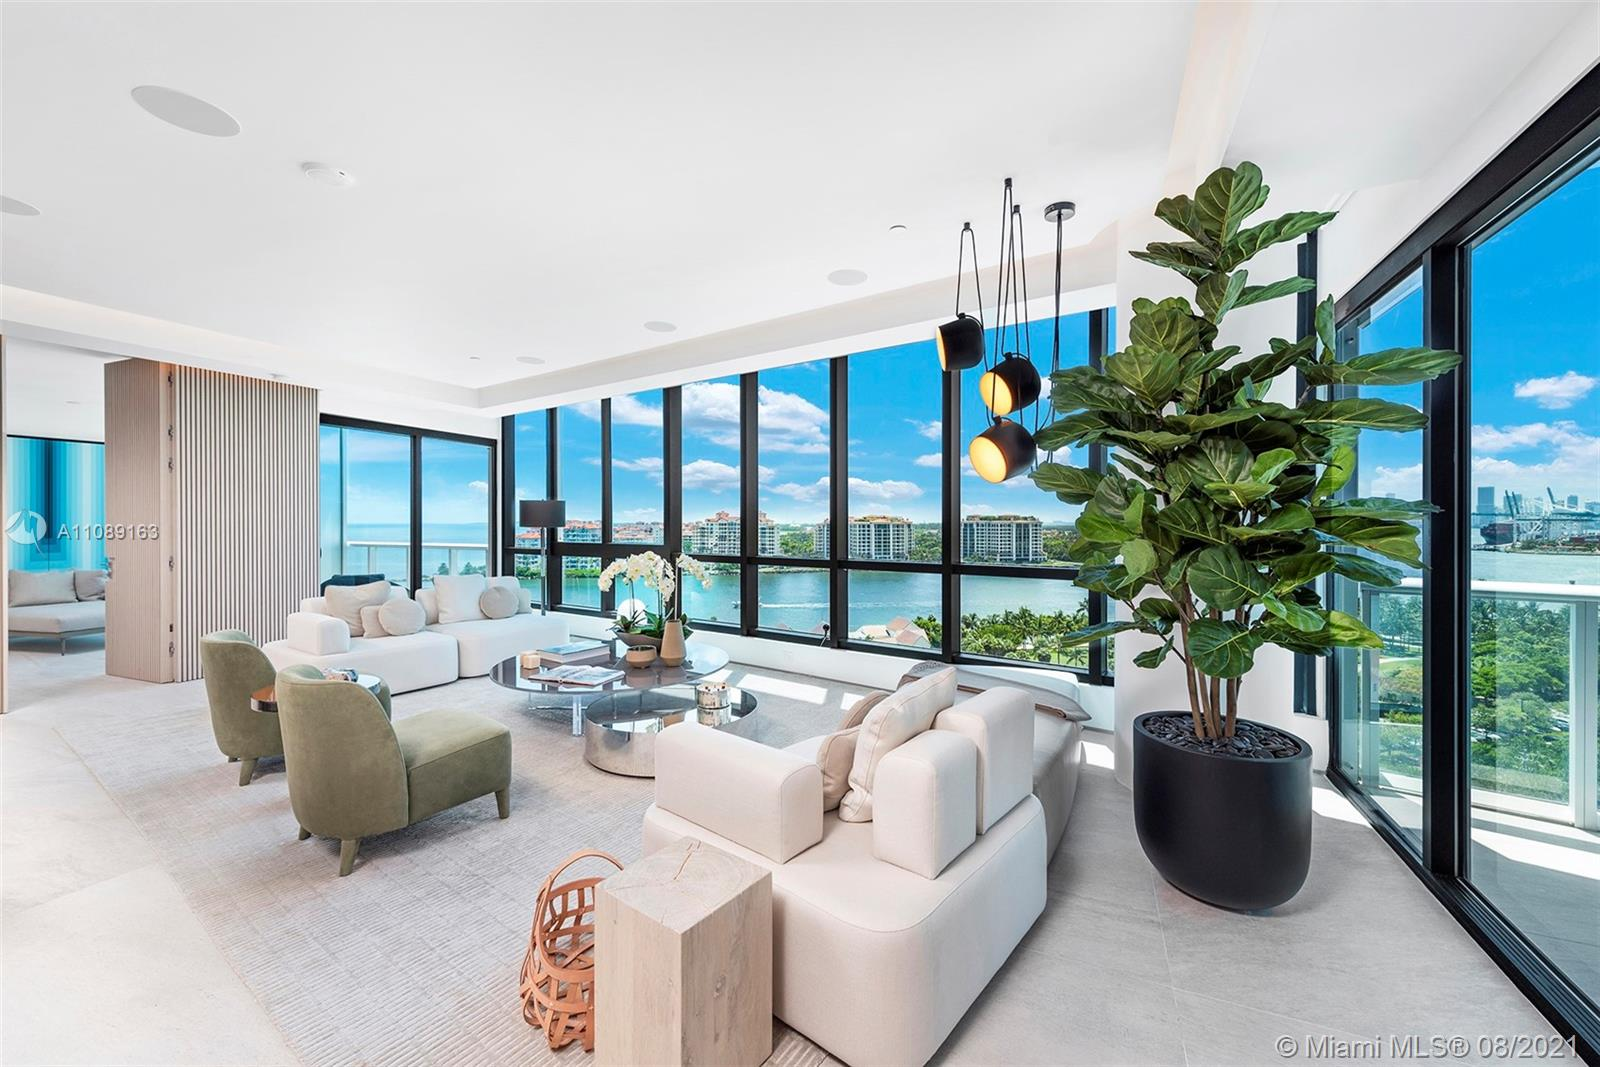 Every single detail in this one-of-a-kind 3,000 SF custom built, combined SW corner residence is meticulously designed blending wonderful panoramic vistas with the finest interior appointments. Impressive 32' wide living room perched above the Atlantic, Biscayne Bay and South Pointe Park, offers a full panorama from the ocean to Miami's Skyline sunsets. Custom features include Ornare kitchen+WI closets, Architectural Lighting, Dornbracht/Hansgohe baths, book-matched CalcuttaGold, white oak lower wall, Lutron/Control4 technology. Grand primary suite features its own terrace, louver crowned California king, sitting-room/spa. Discover an unparalleled lifestyle Continuum  offers its residences on an unprecedented 12.5 acre beachfront oasis at the southernmost tip of the island of Miami Beach.